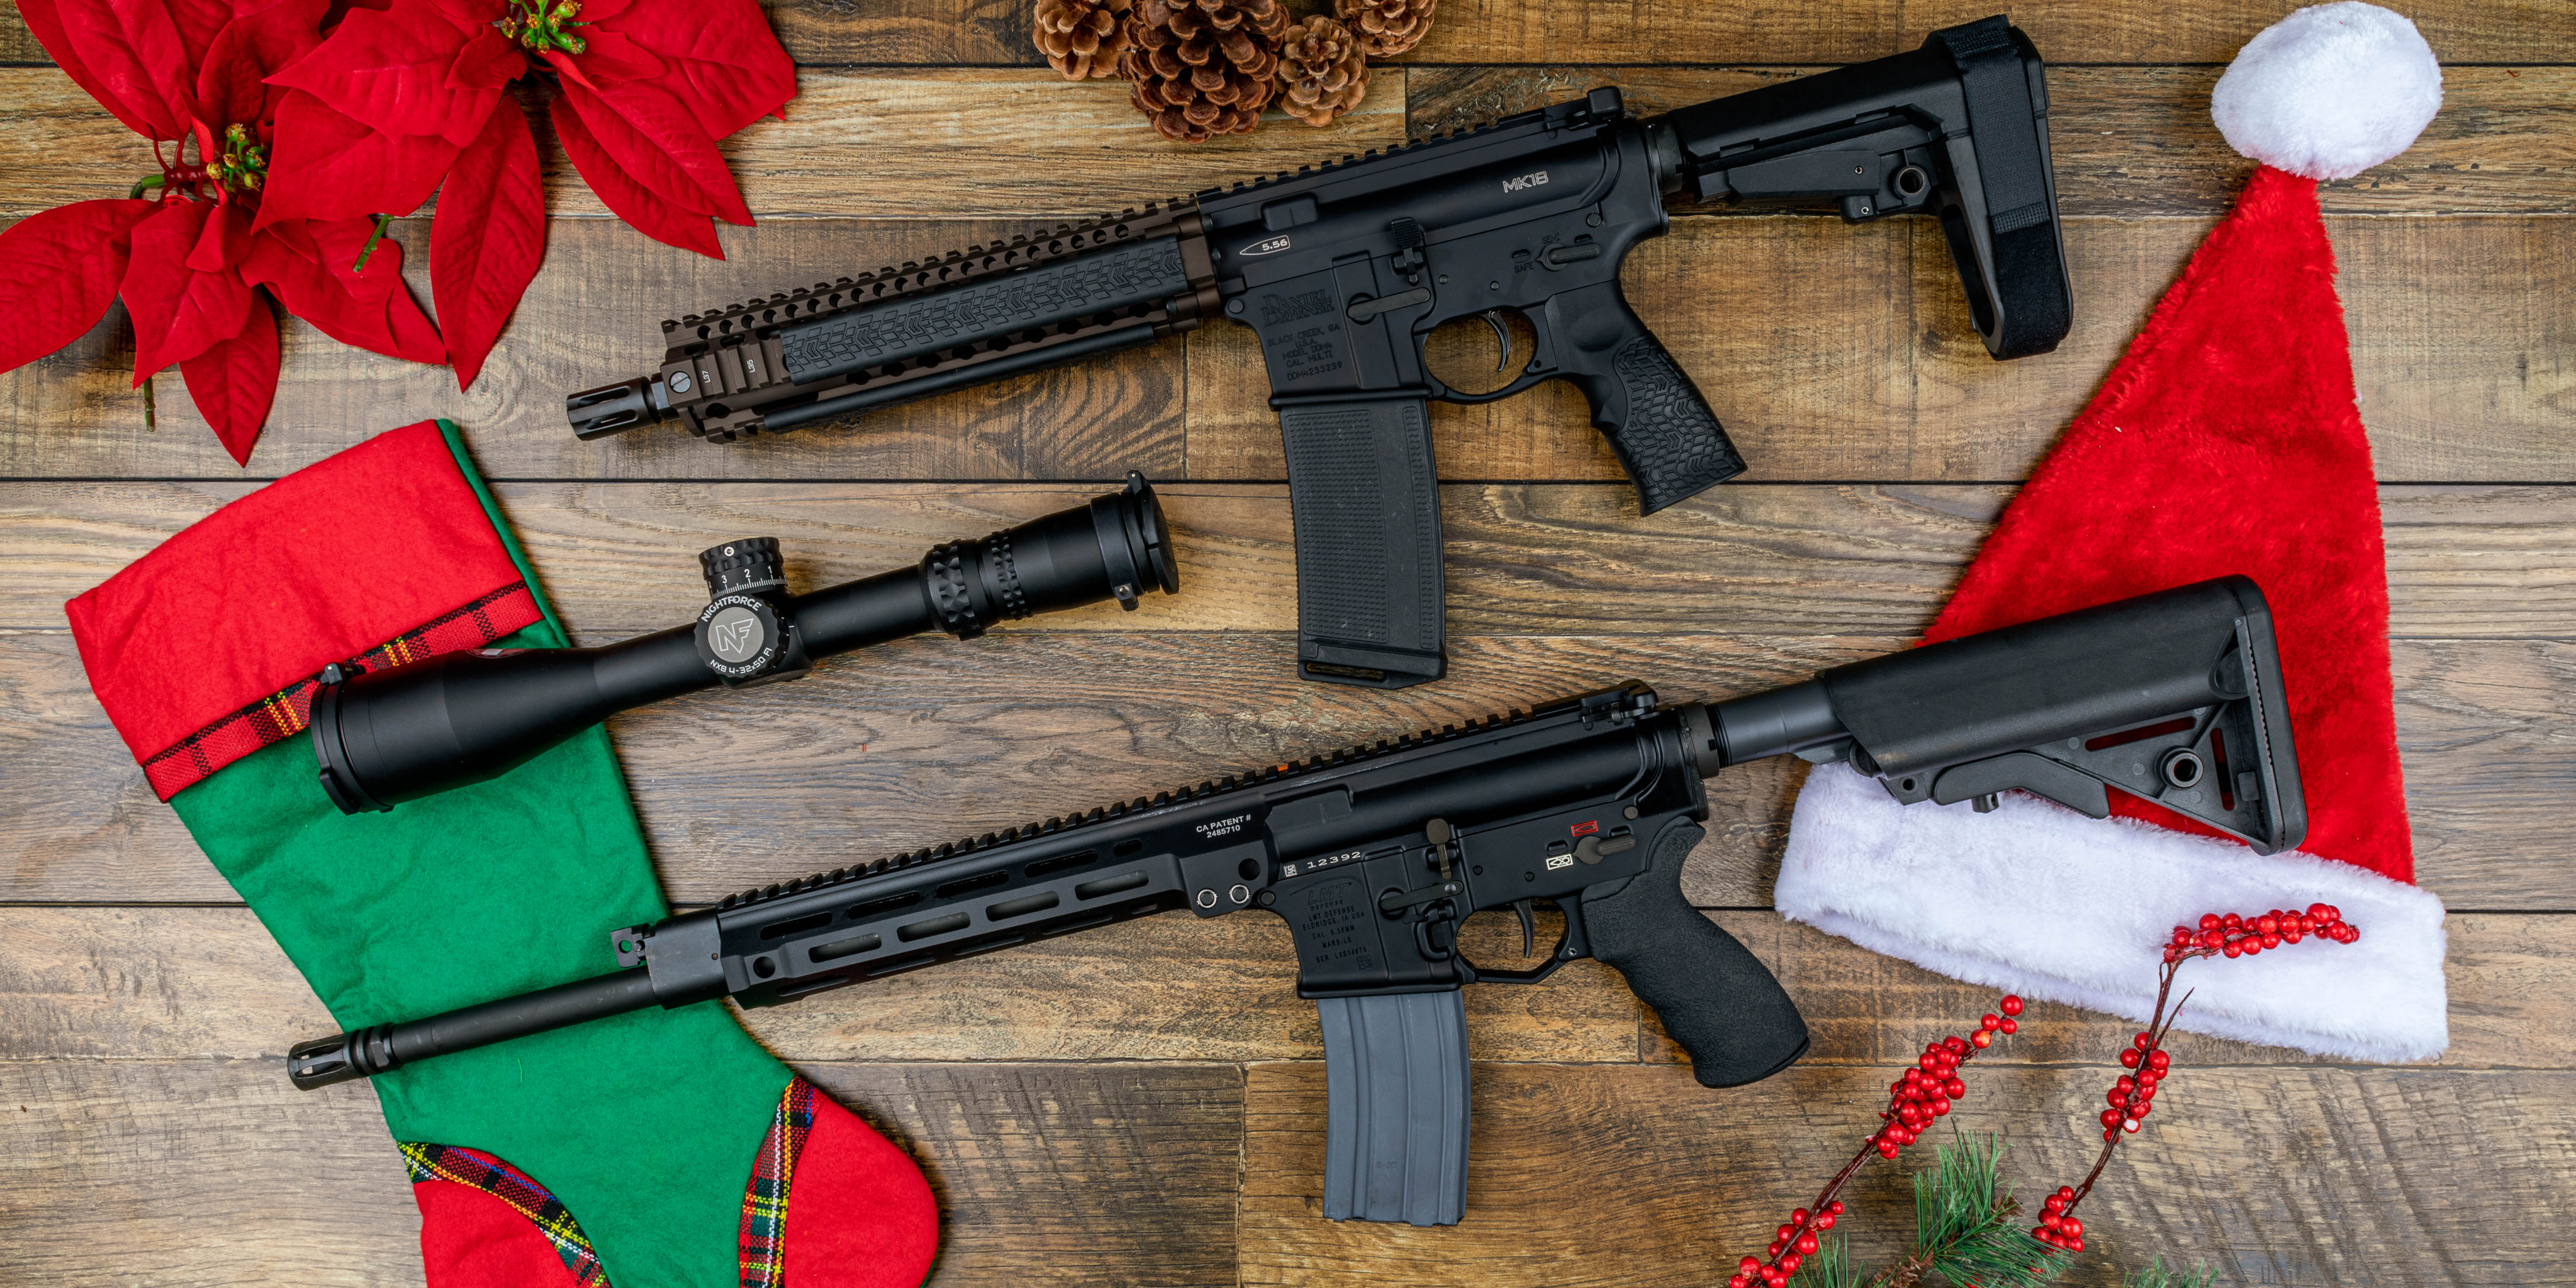 Primary Arms best gifts for 2019 including Daniel Defense, LMT, and Nightforce.